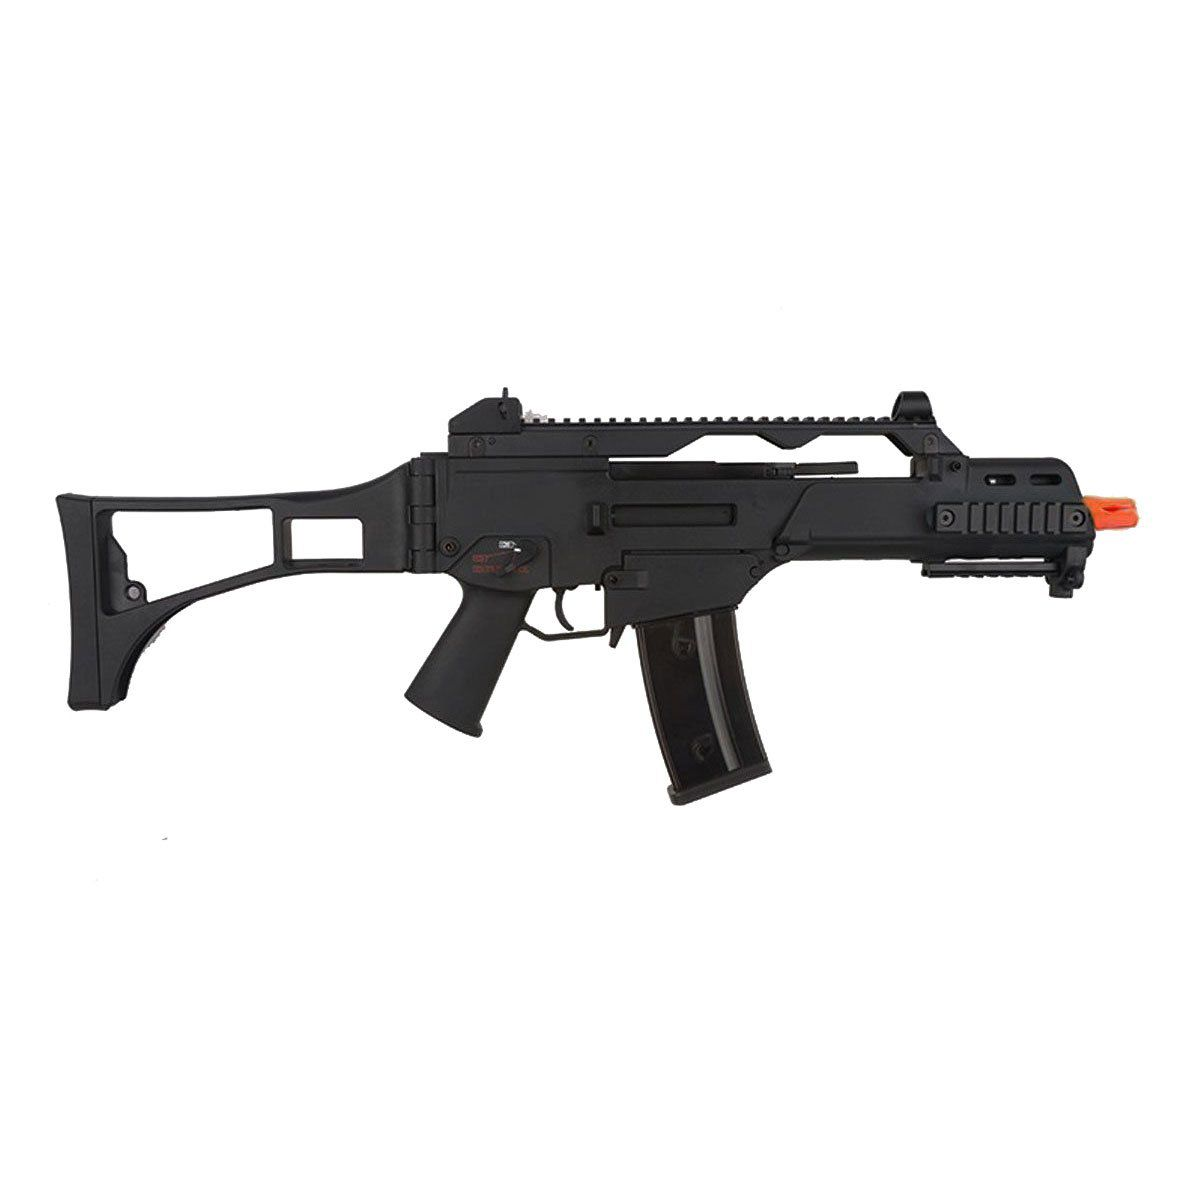 Rifle de Airsoft Army Armament R36 GBB 6mm